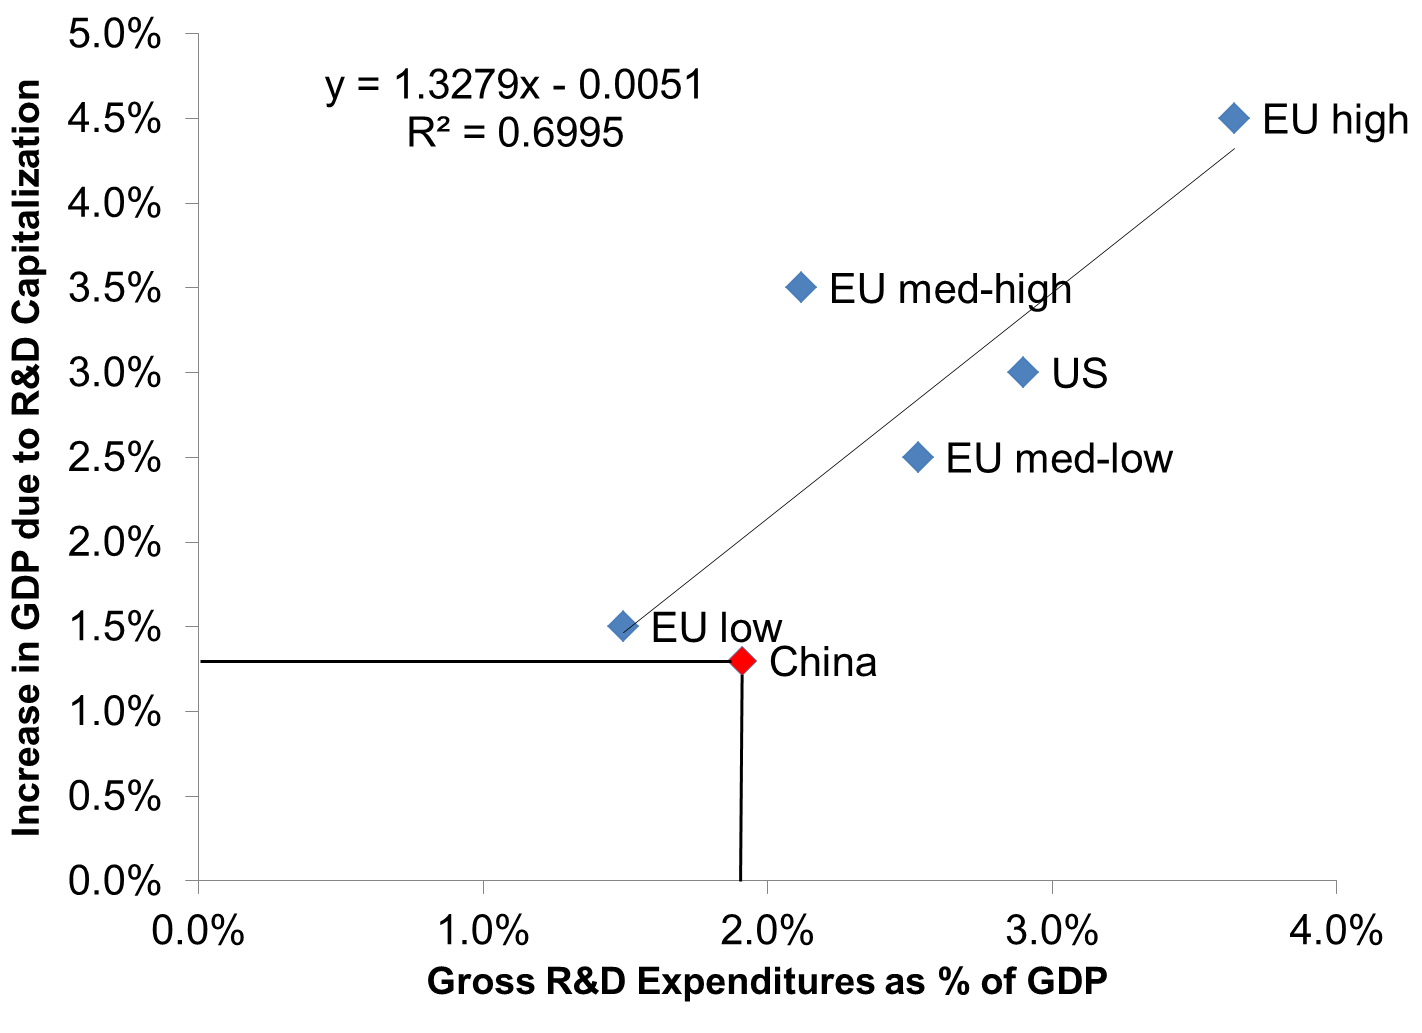 impact of capitalization Ias 38 requires capitalization of r&d costs if they meet certain criteria the negative impact of r&d capitalization: a value relevance approach.